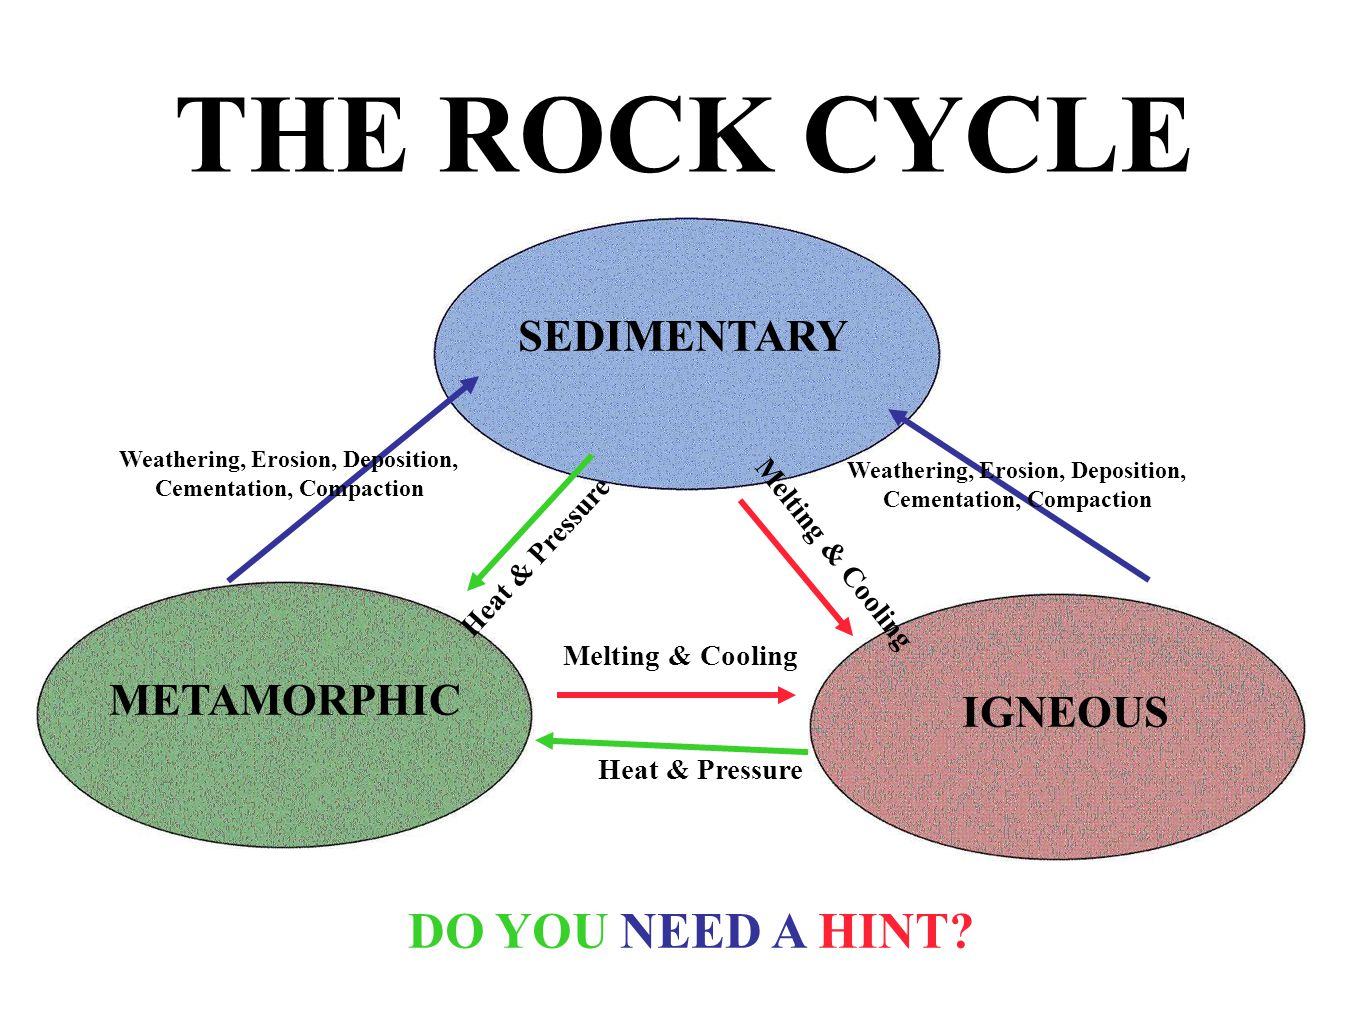 THE ROCK CYCLE DO YOU NEED A HINT? SEDIMENTARY METAMORPHIC Heat & Pressure IGNEOUS Heat & Pressure Weathering, Erosion, Deposition, Cementation, Compa